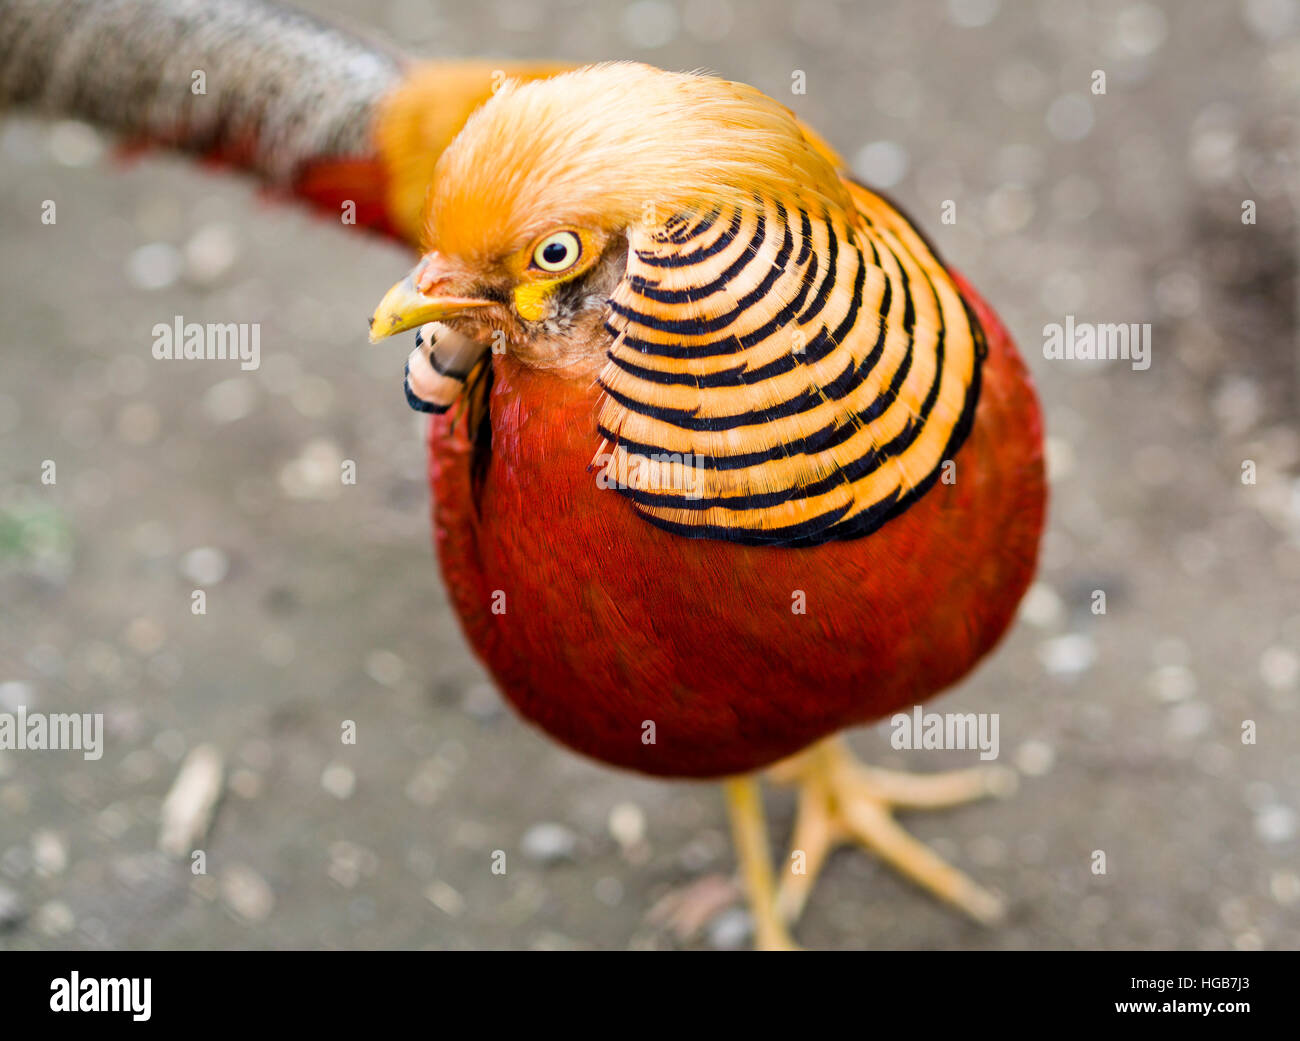 Golden Pheasant in a zoo. A male golden pheasant shows off his bright orange head plumage or crest. Stock Photo